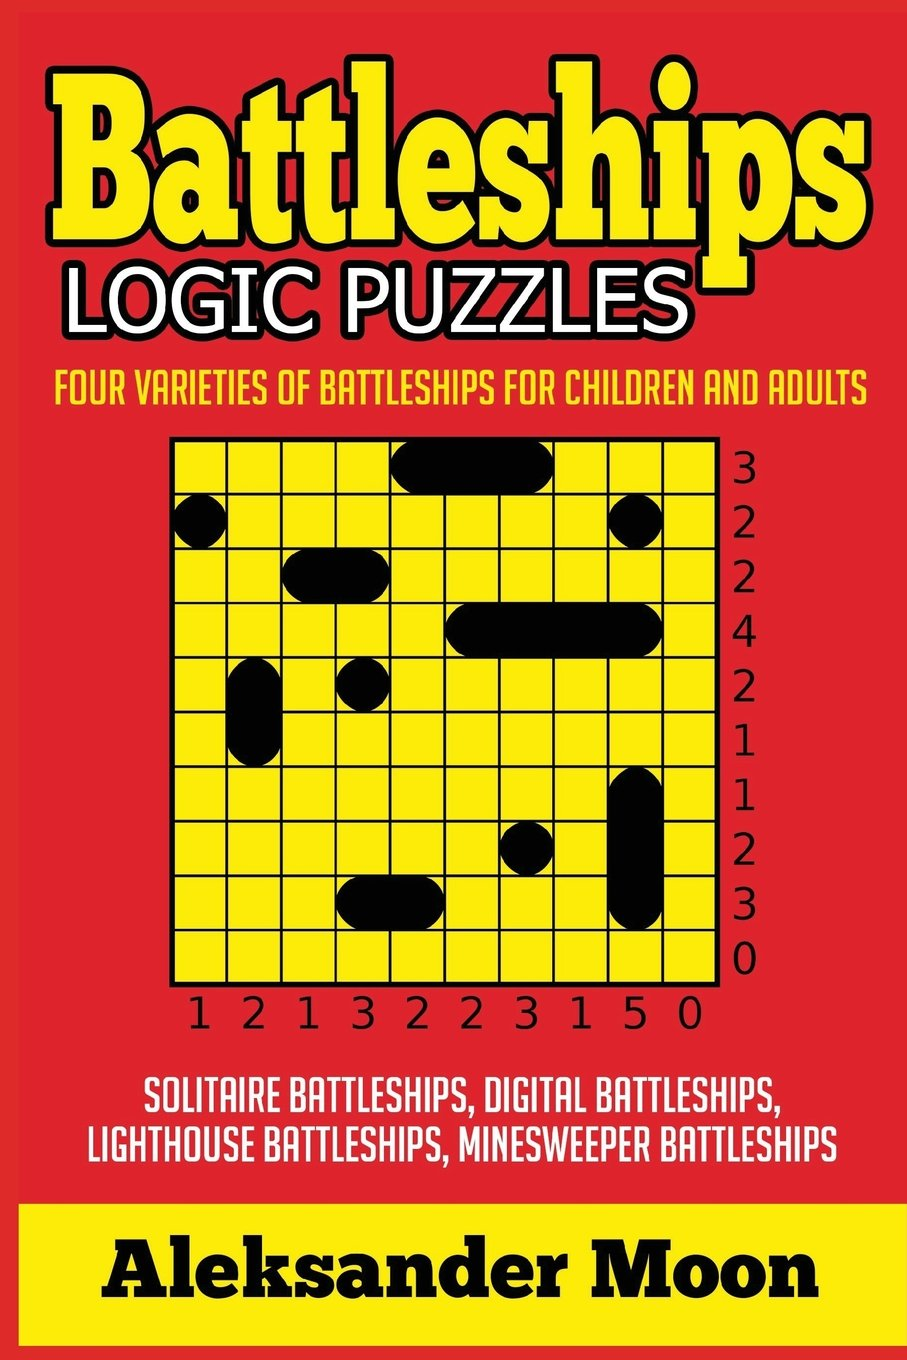 Download Battleships Logic Puzzles: Four Varieties of Battleships for Children and Adults (Logic Puzzles for Teens) pdf